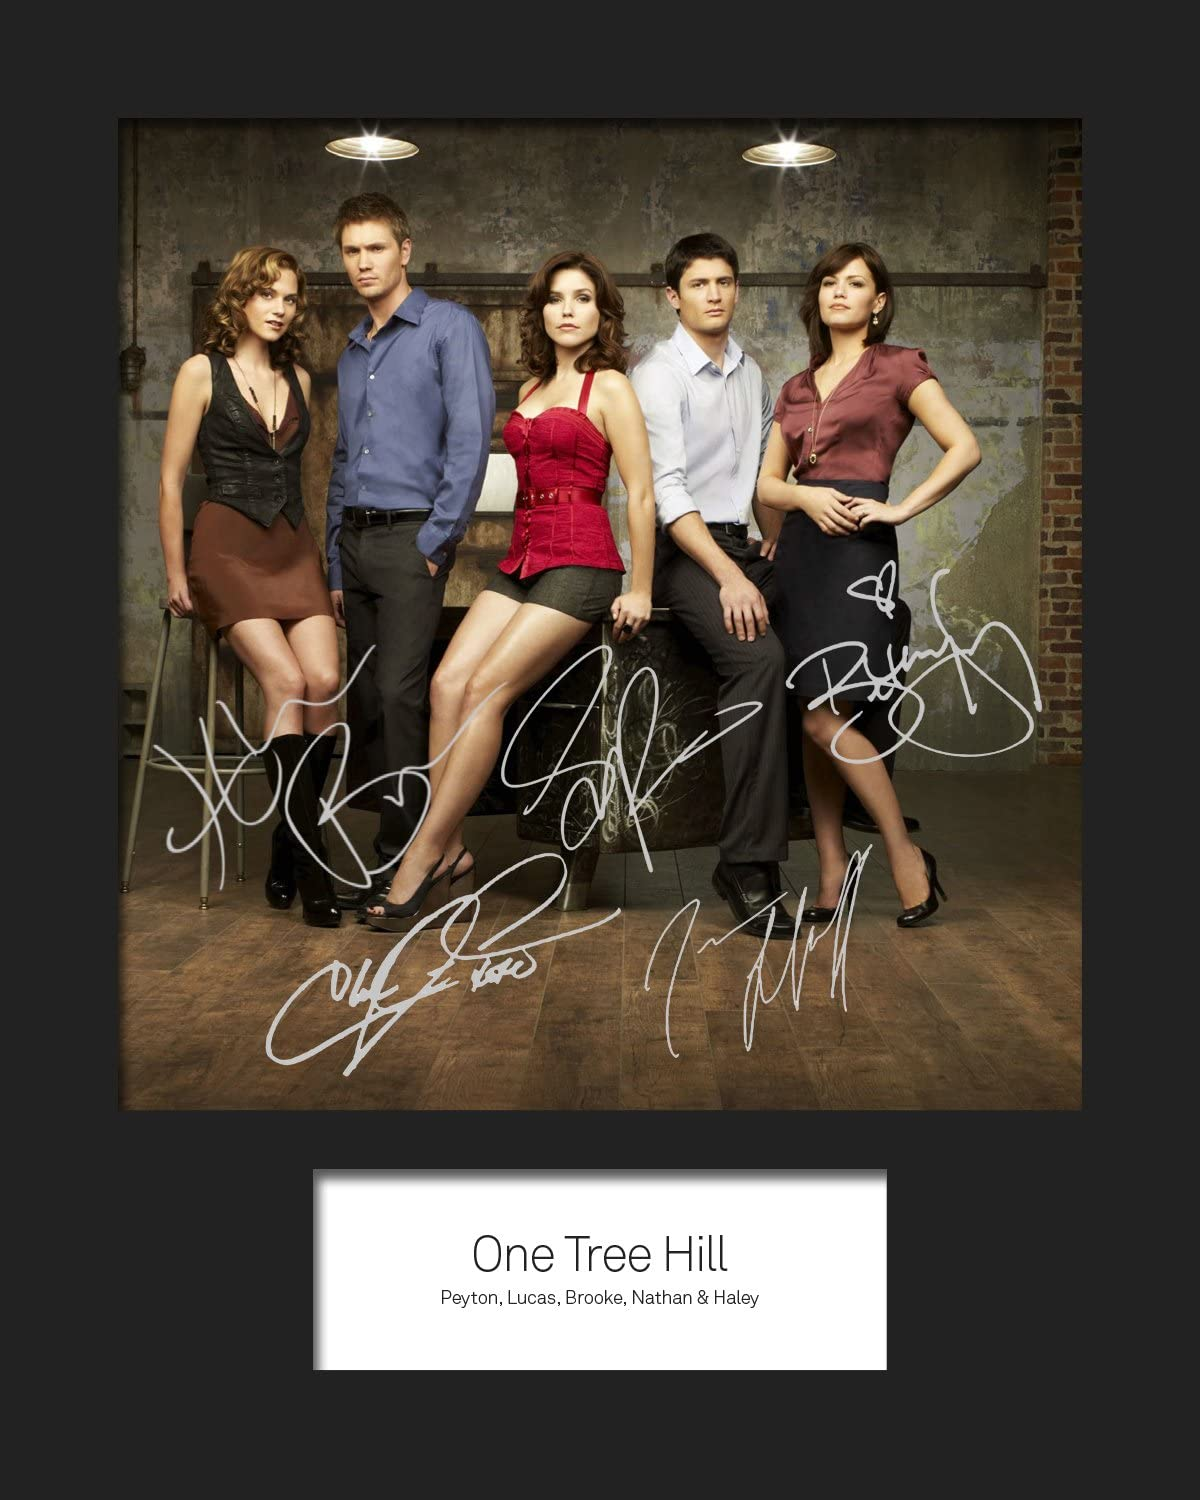 ONE TREE HILL #1 Photo Display Machine Cut Signed Mounted Photo Reprint 10x8 Size to Fit 10x8 Inch Frames Present Gift Collectible